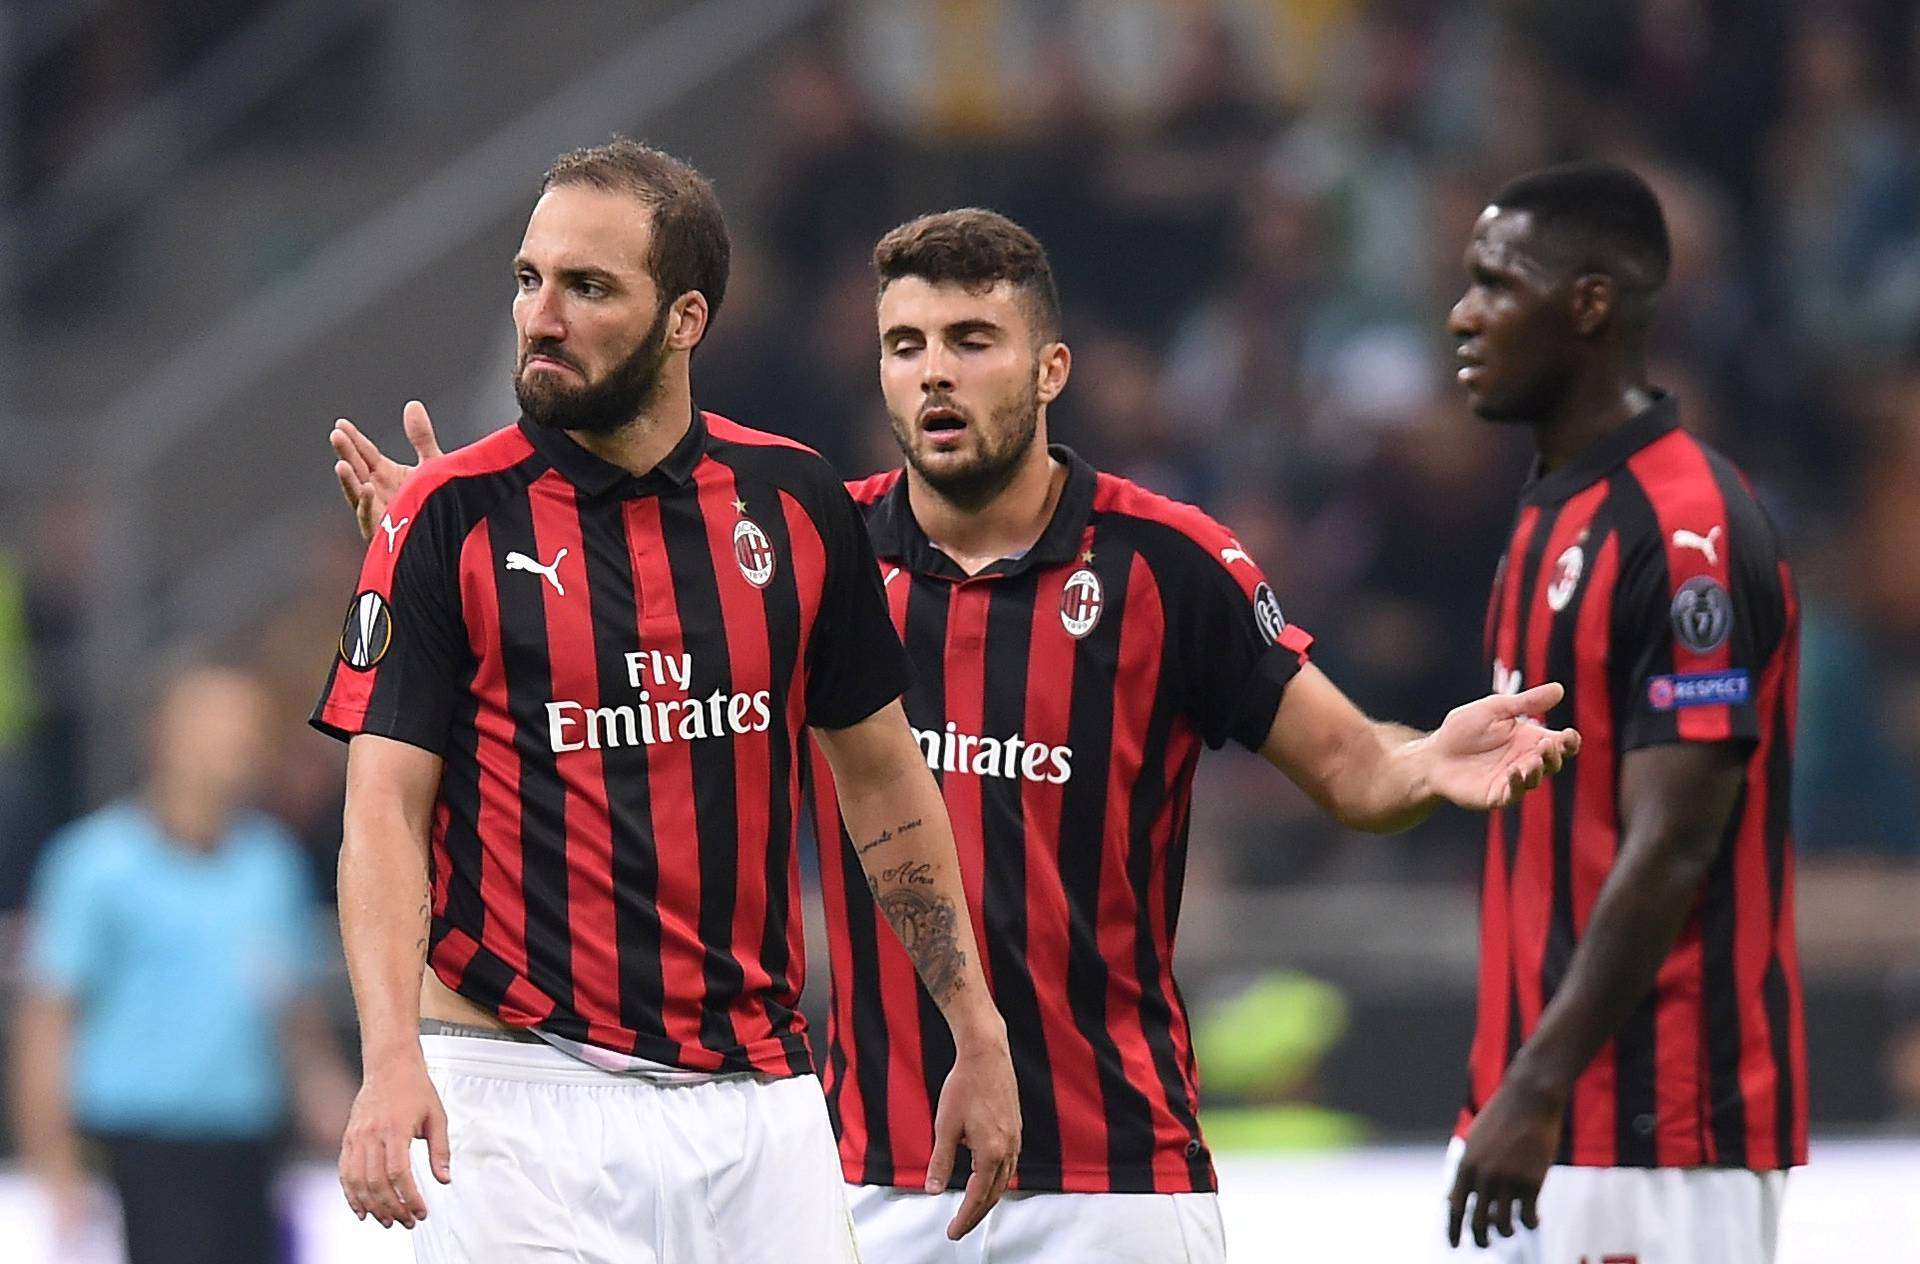 Europa League - Group Stage - Group F - AC Milan v Real Betis